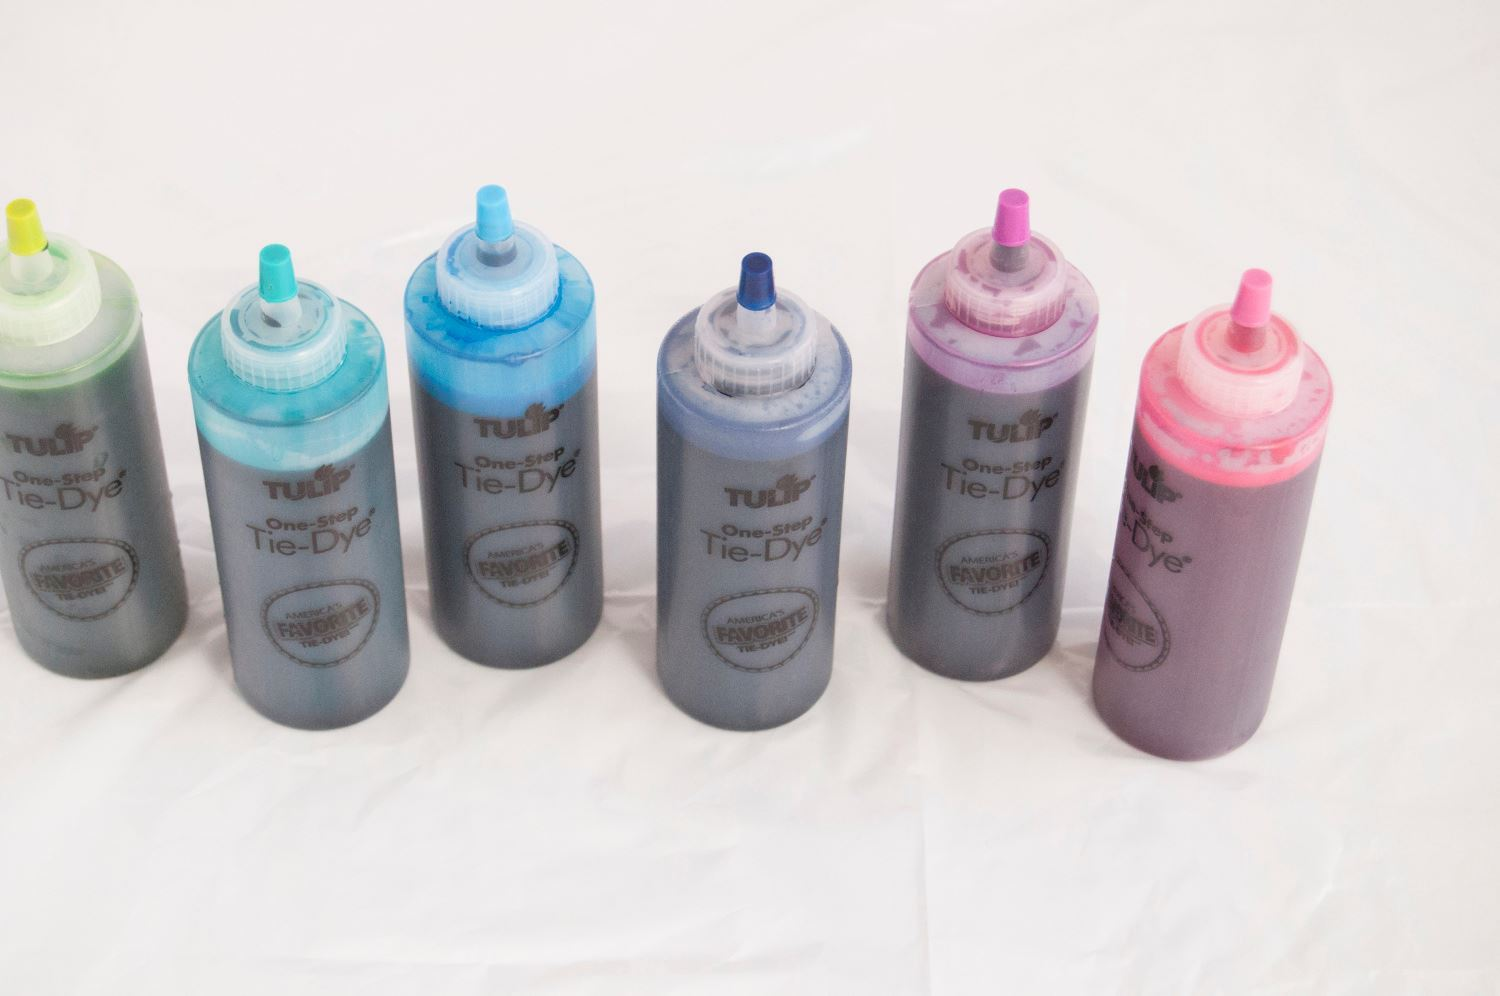 Add water to dye bottles and shake to mix